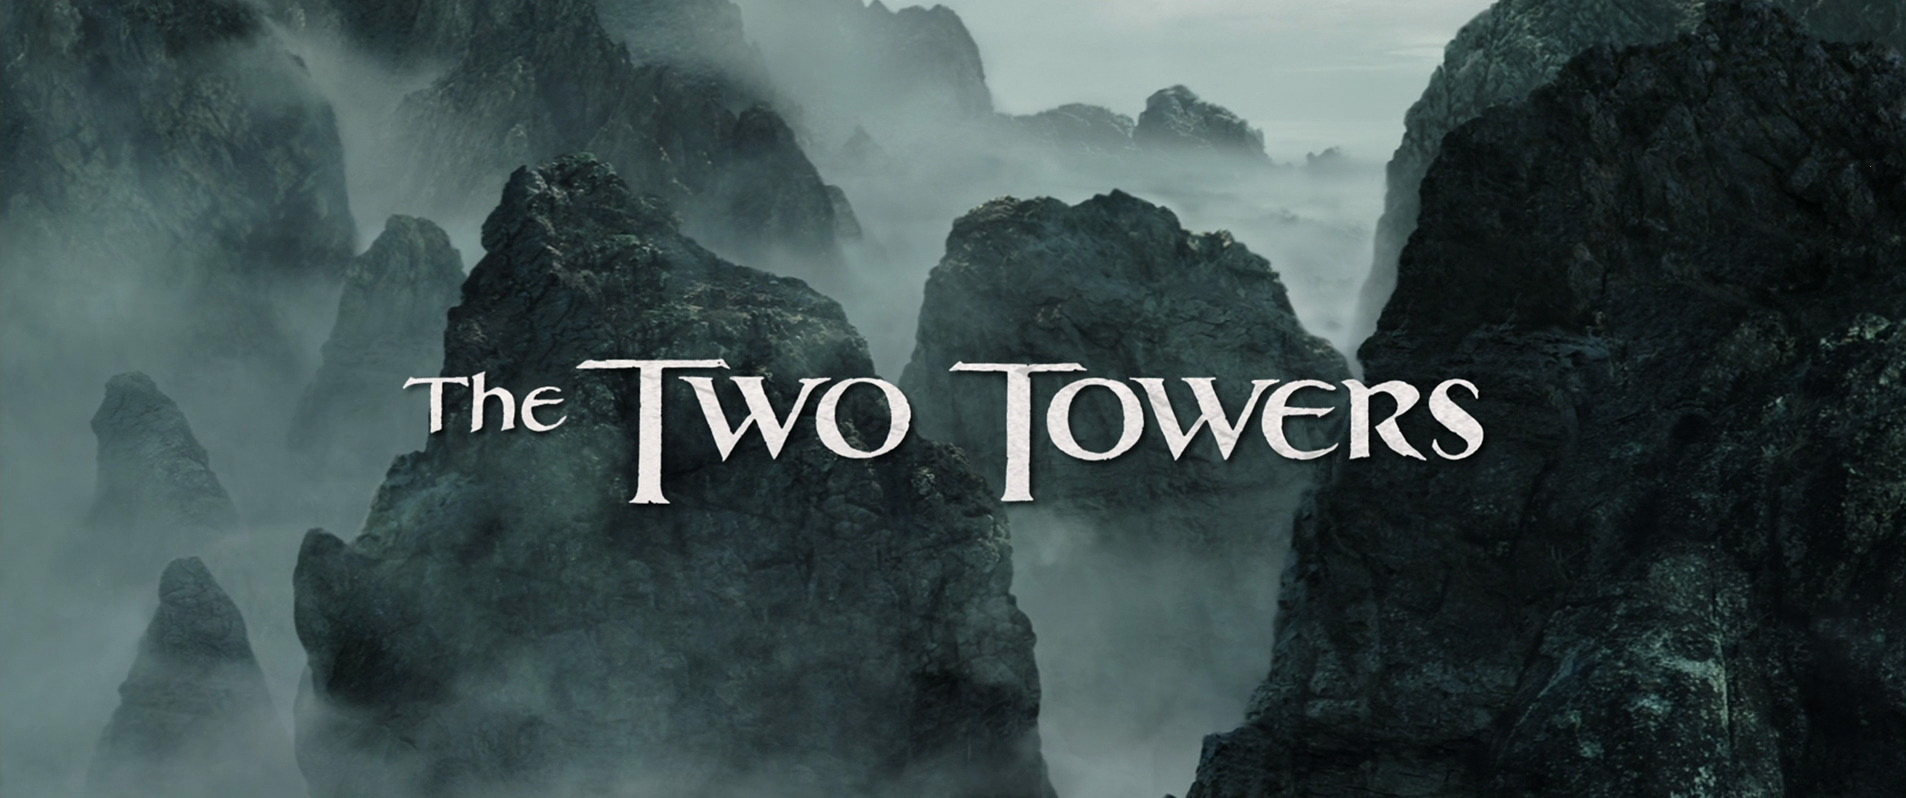 Movie title capture for The Lord of the Rings: The Two Towers